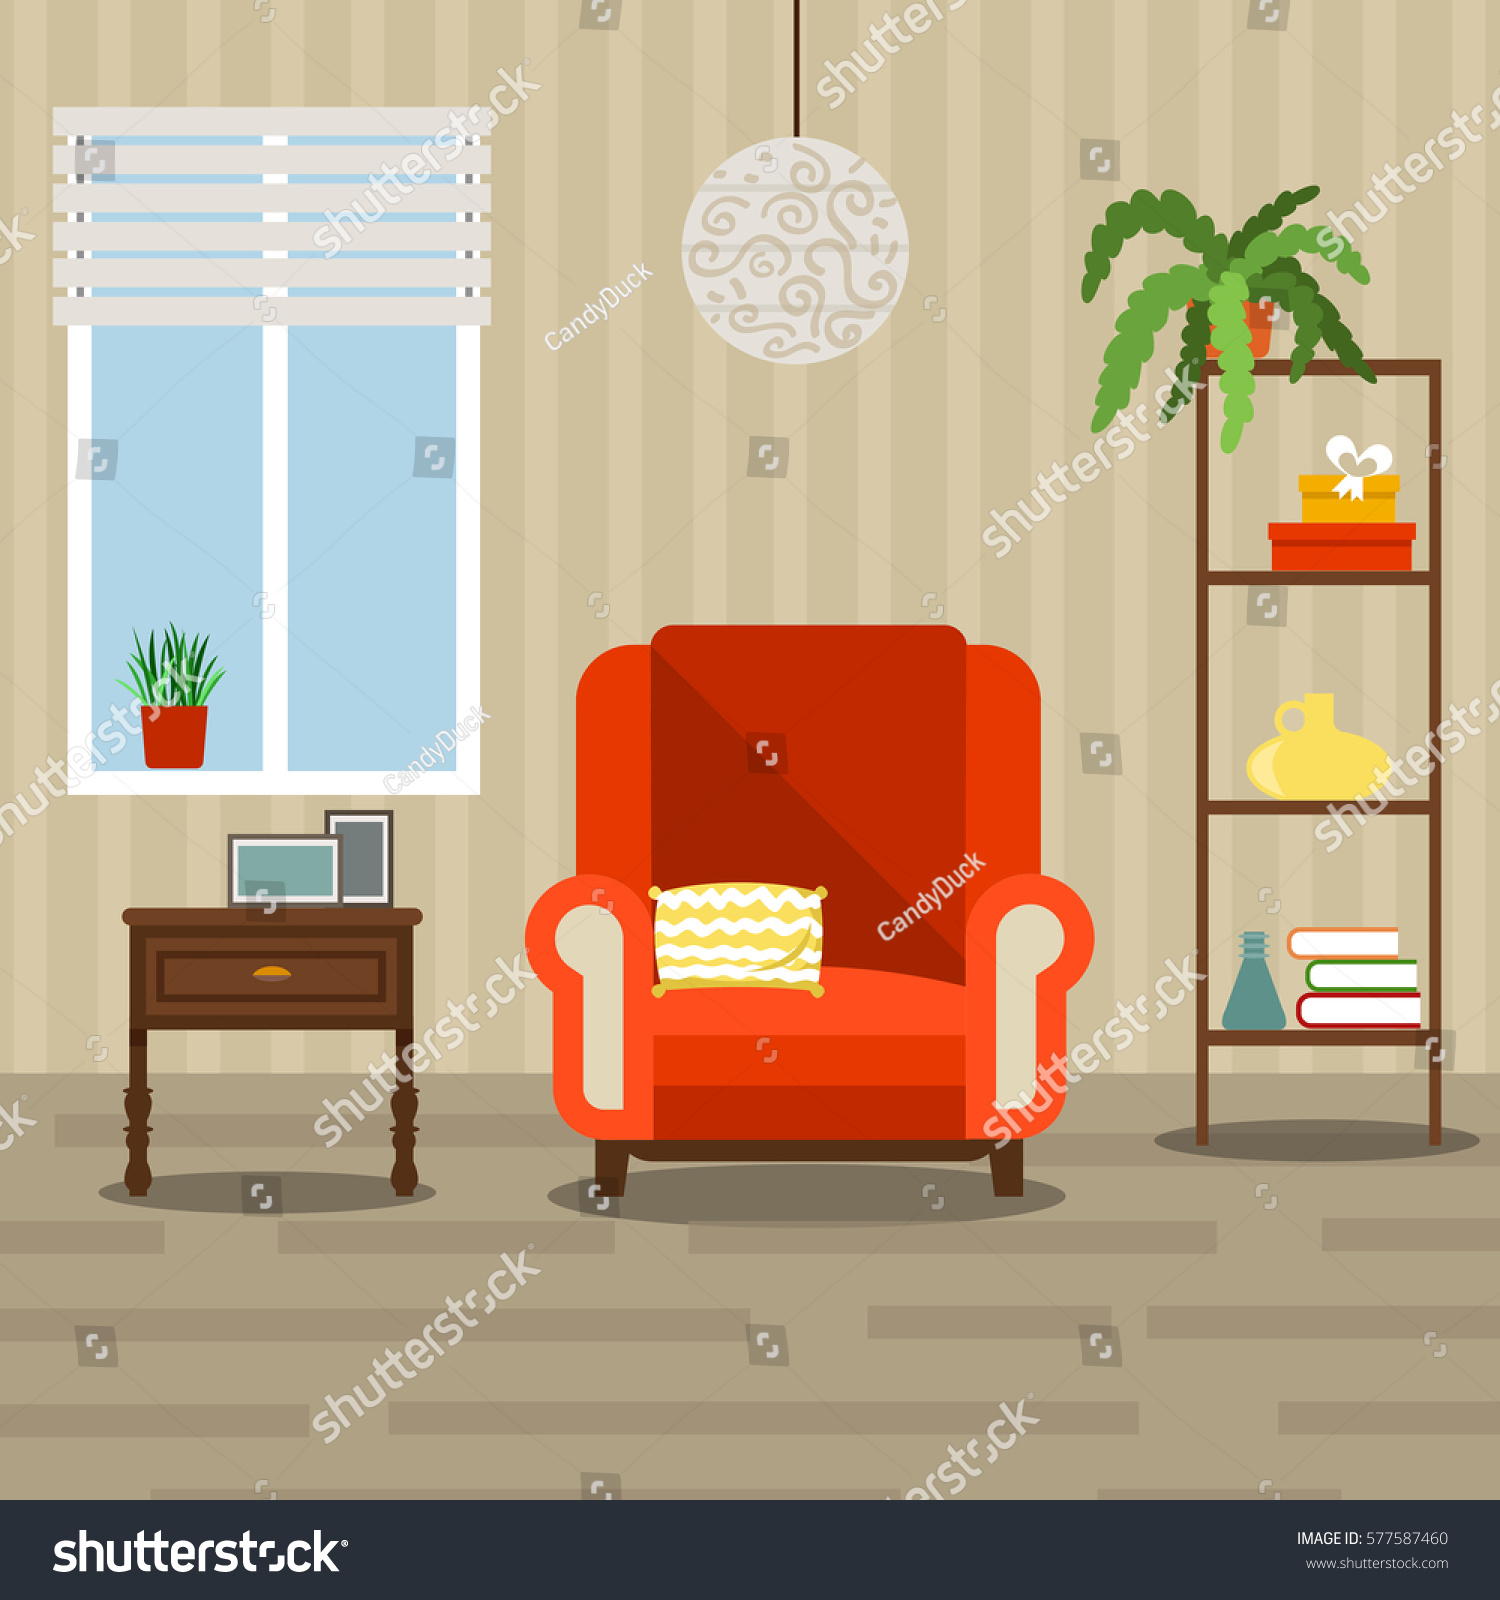 Vector image illustration room living room stock vector for Room design vector